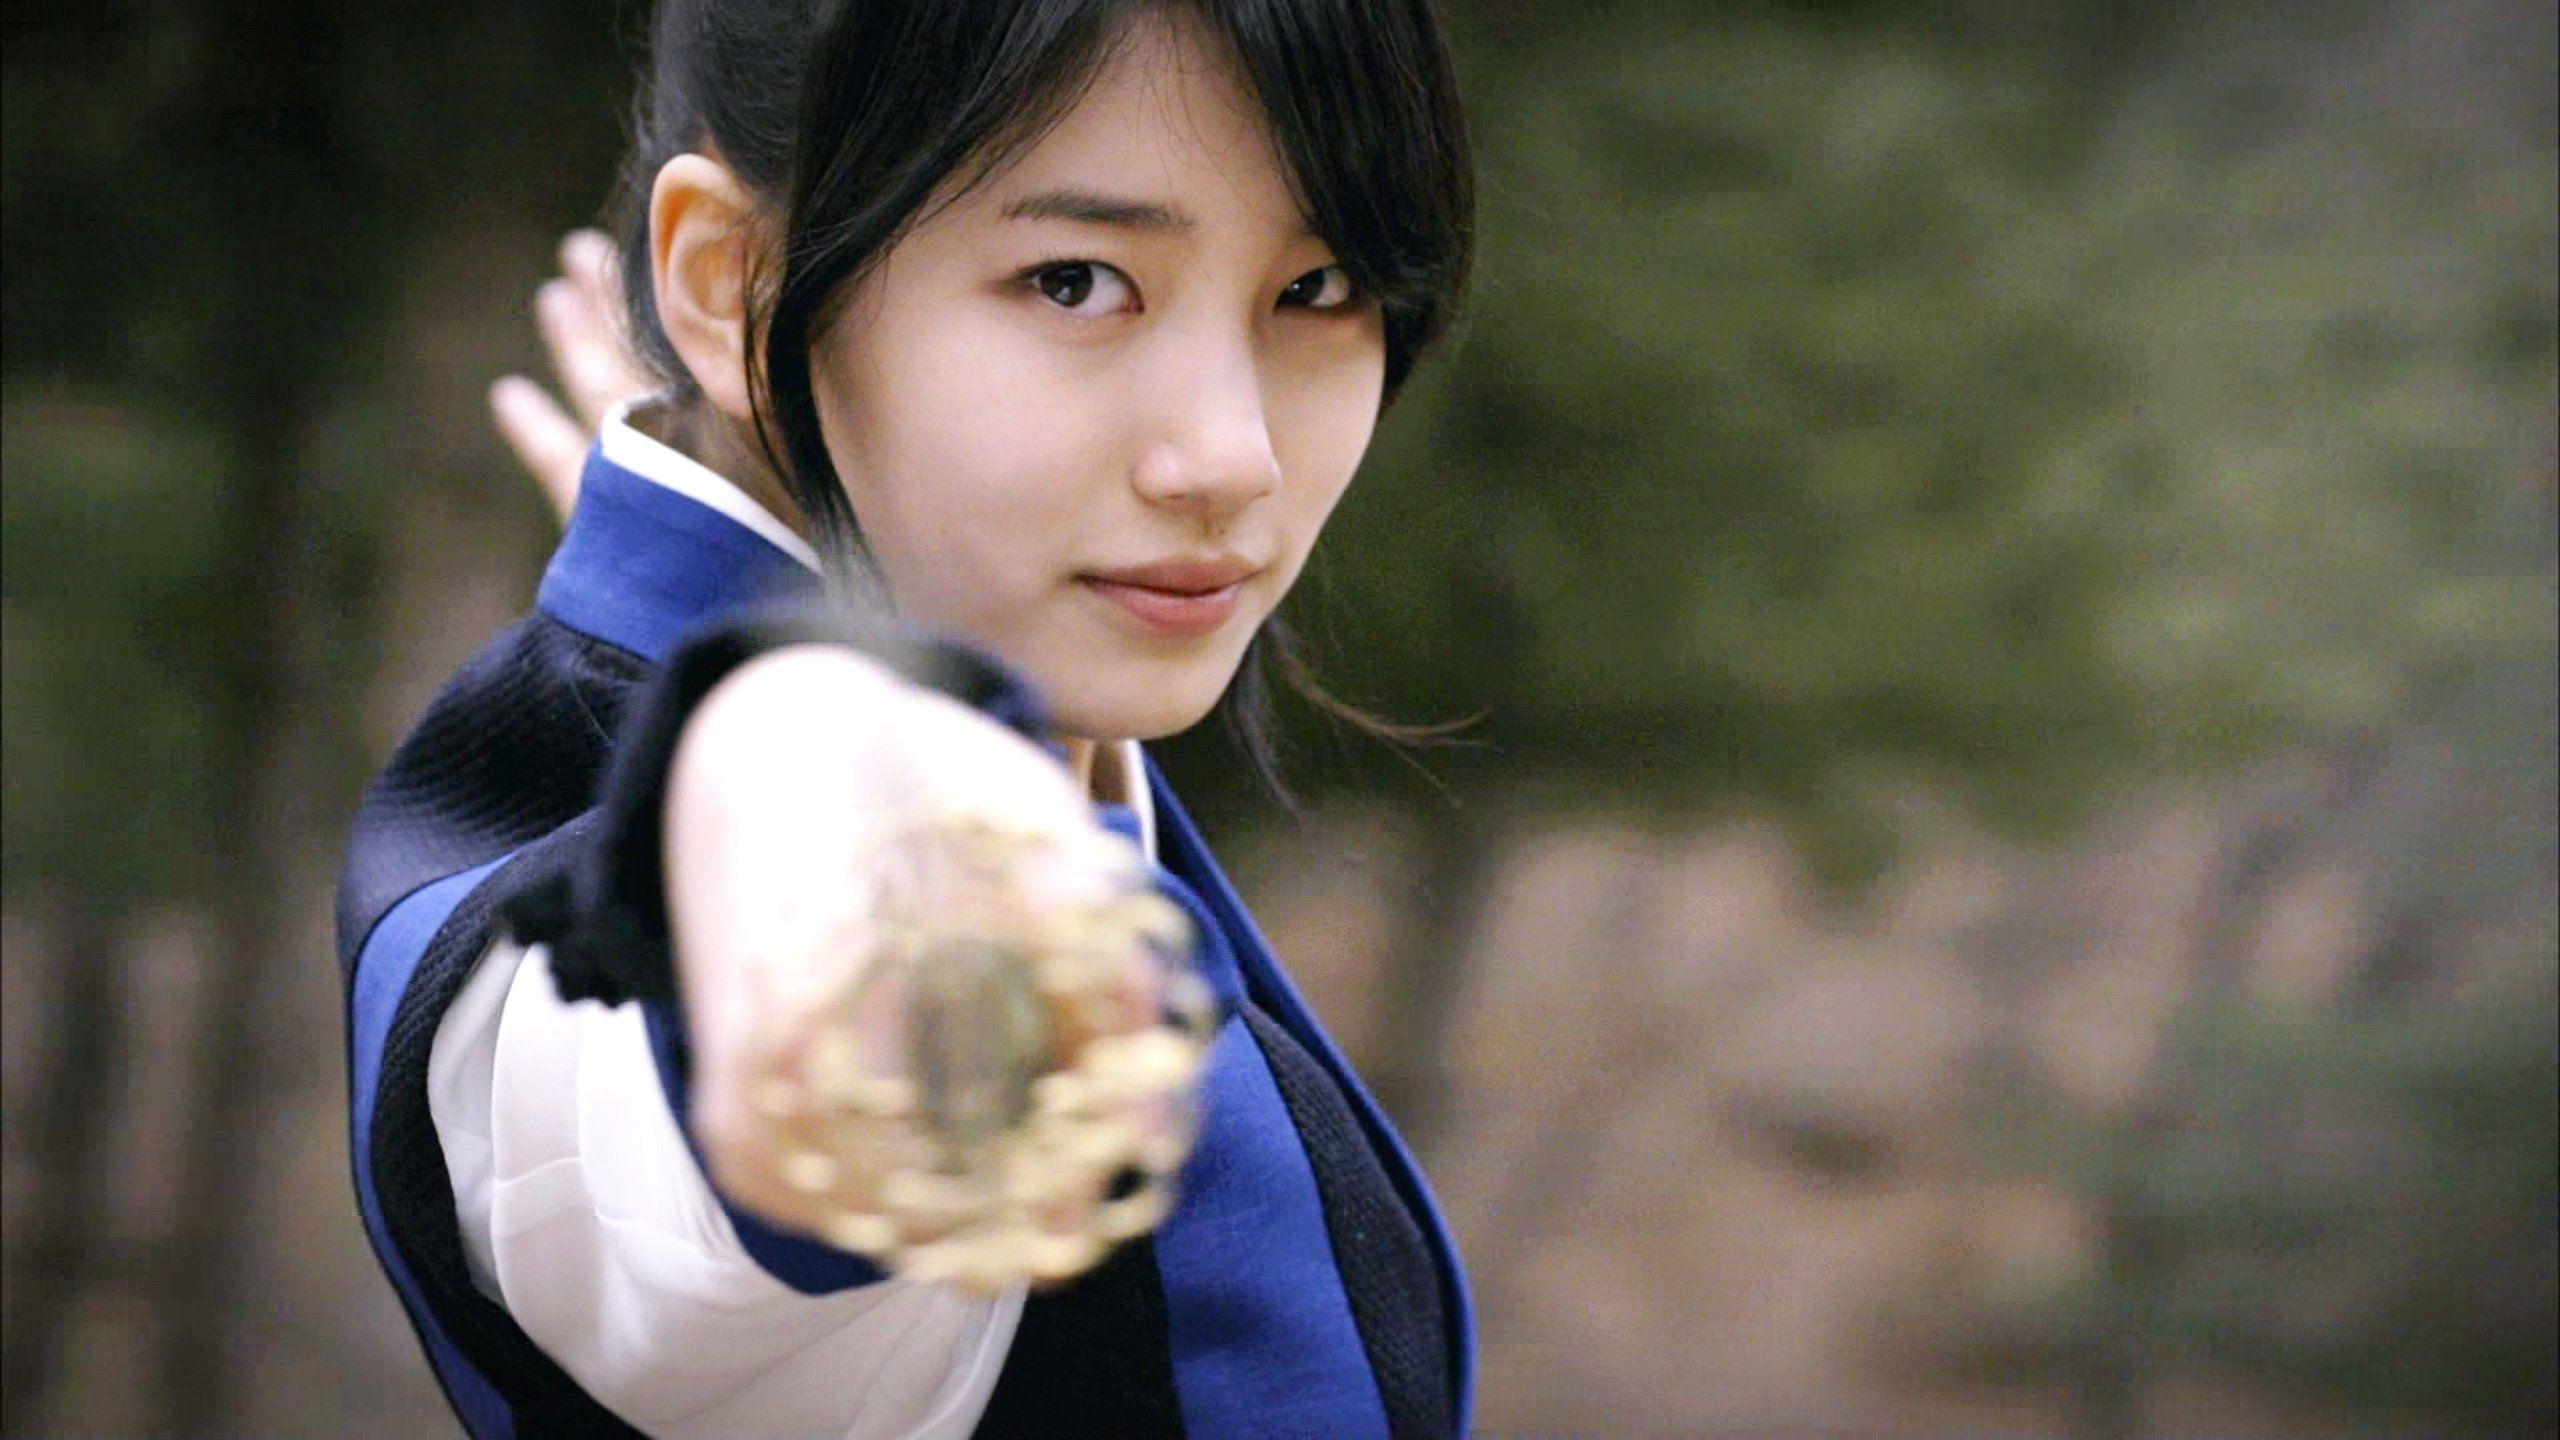 Gu Family Book Bae Suzy wallpaper | 1920x1080 | 644883 | WallpaperUP